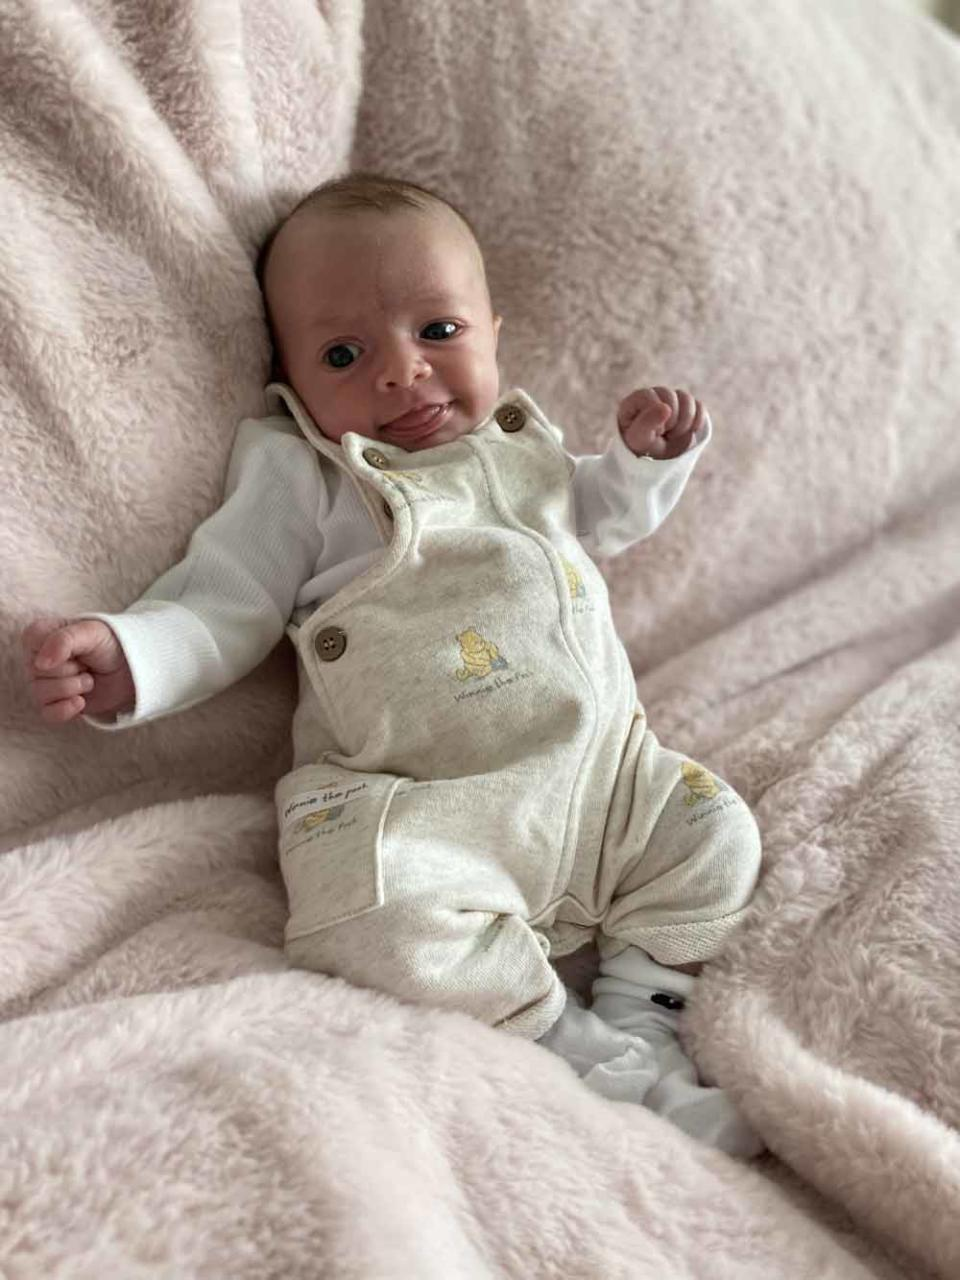 Willow Grace in a Winnie the Pooh onesie. PA REAL LIFE